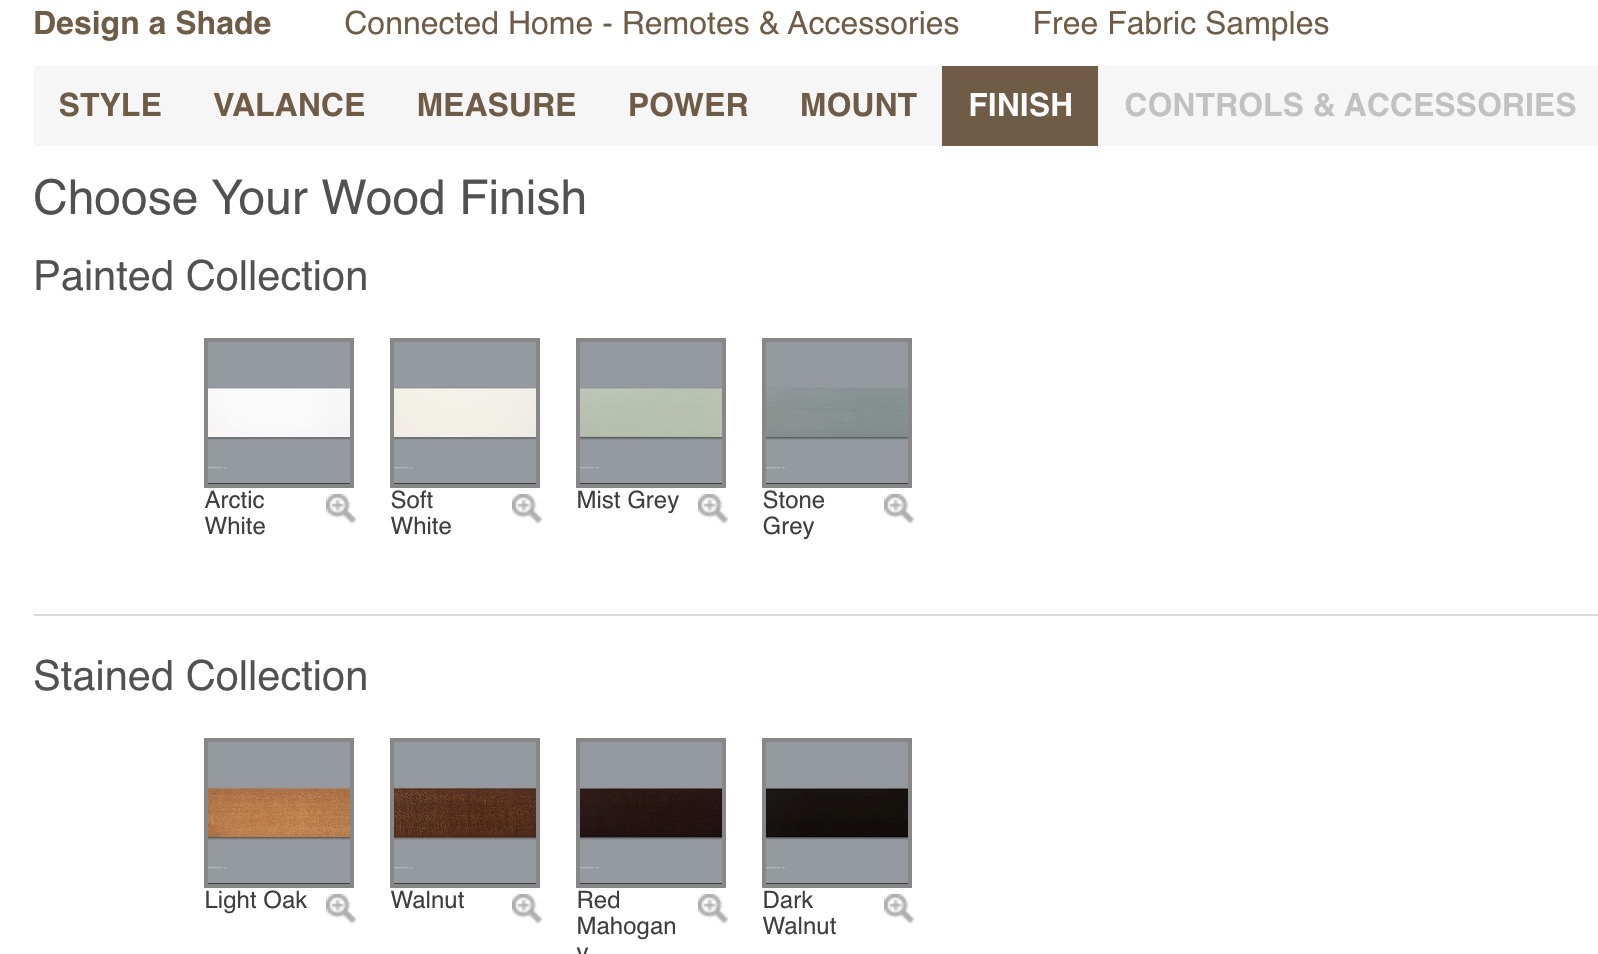 There are plenty of customization options with Serena's Wood Blinds